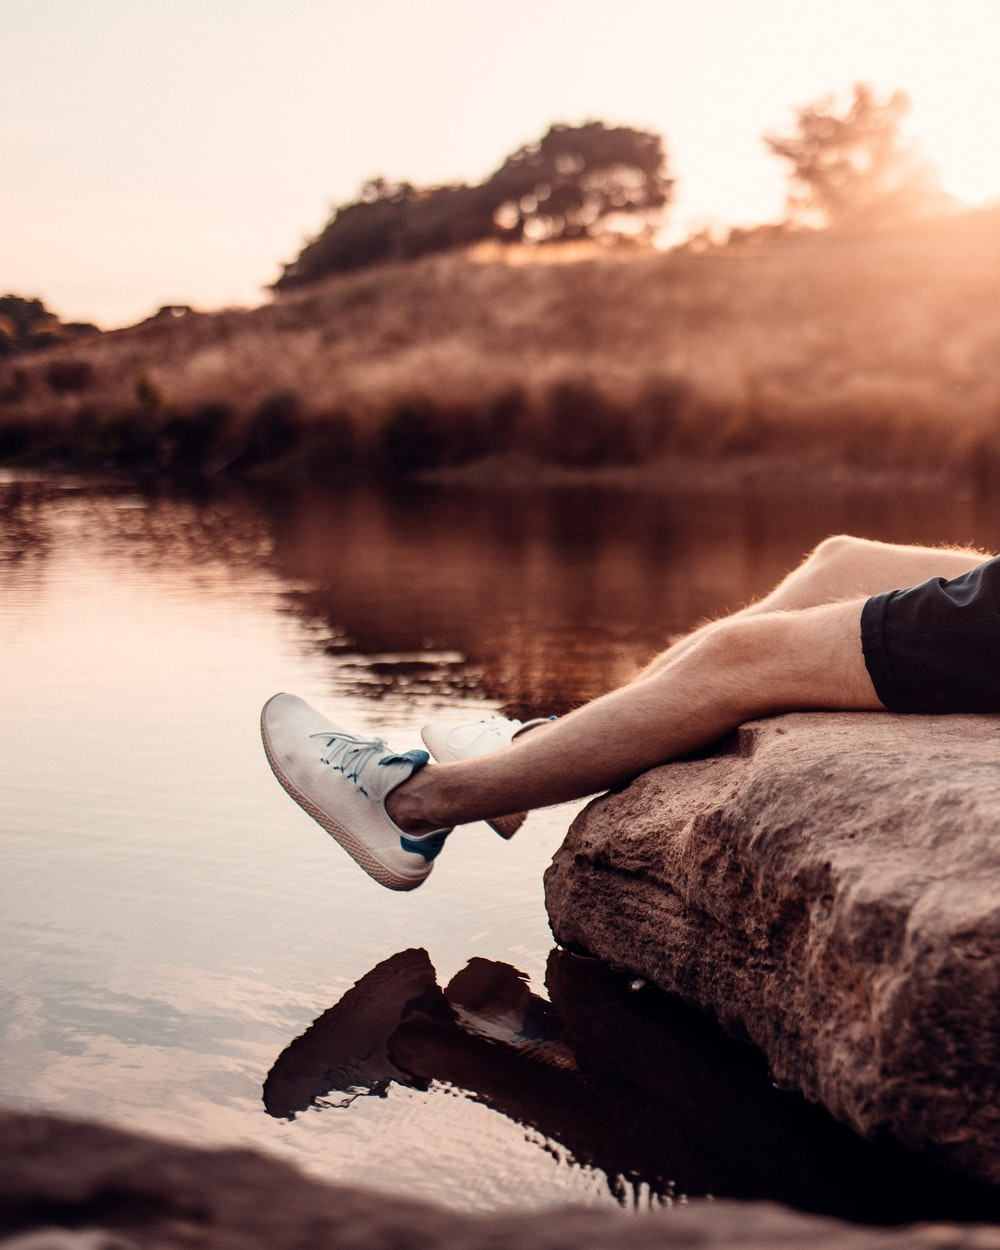 person wearing white sneakers sitting on brown rock near body of water during sunset